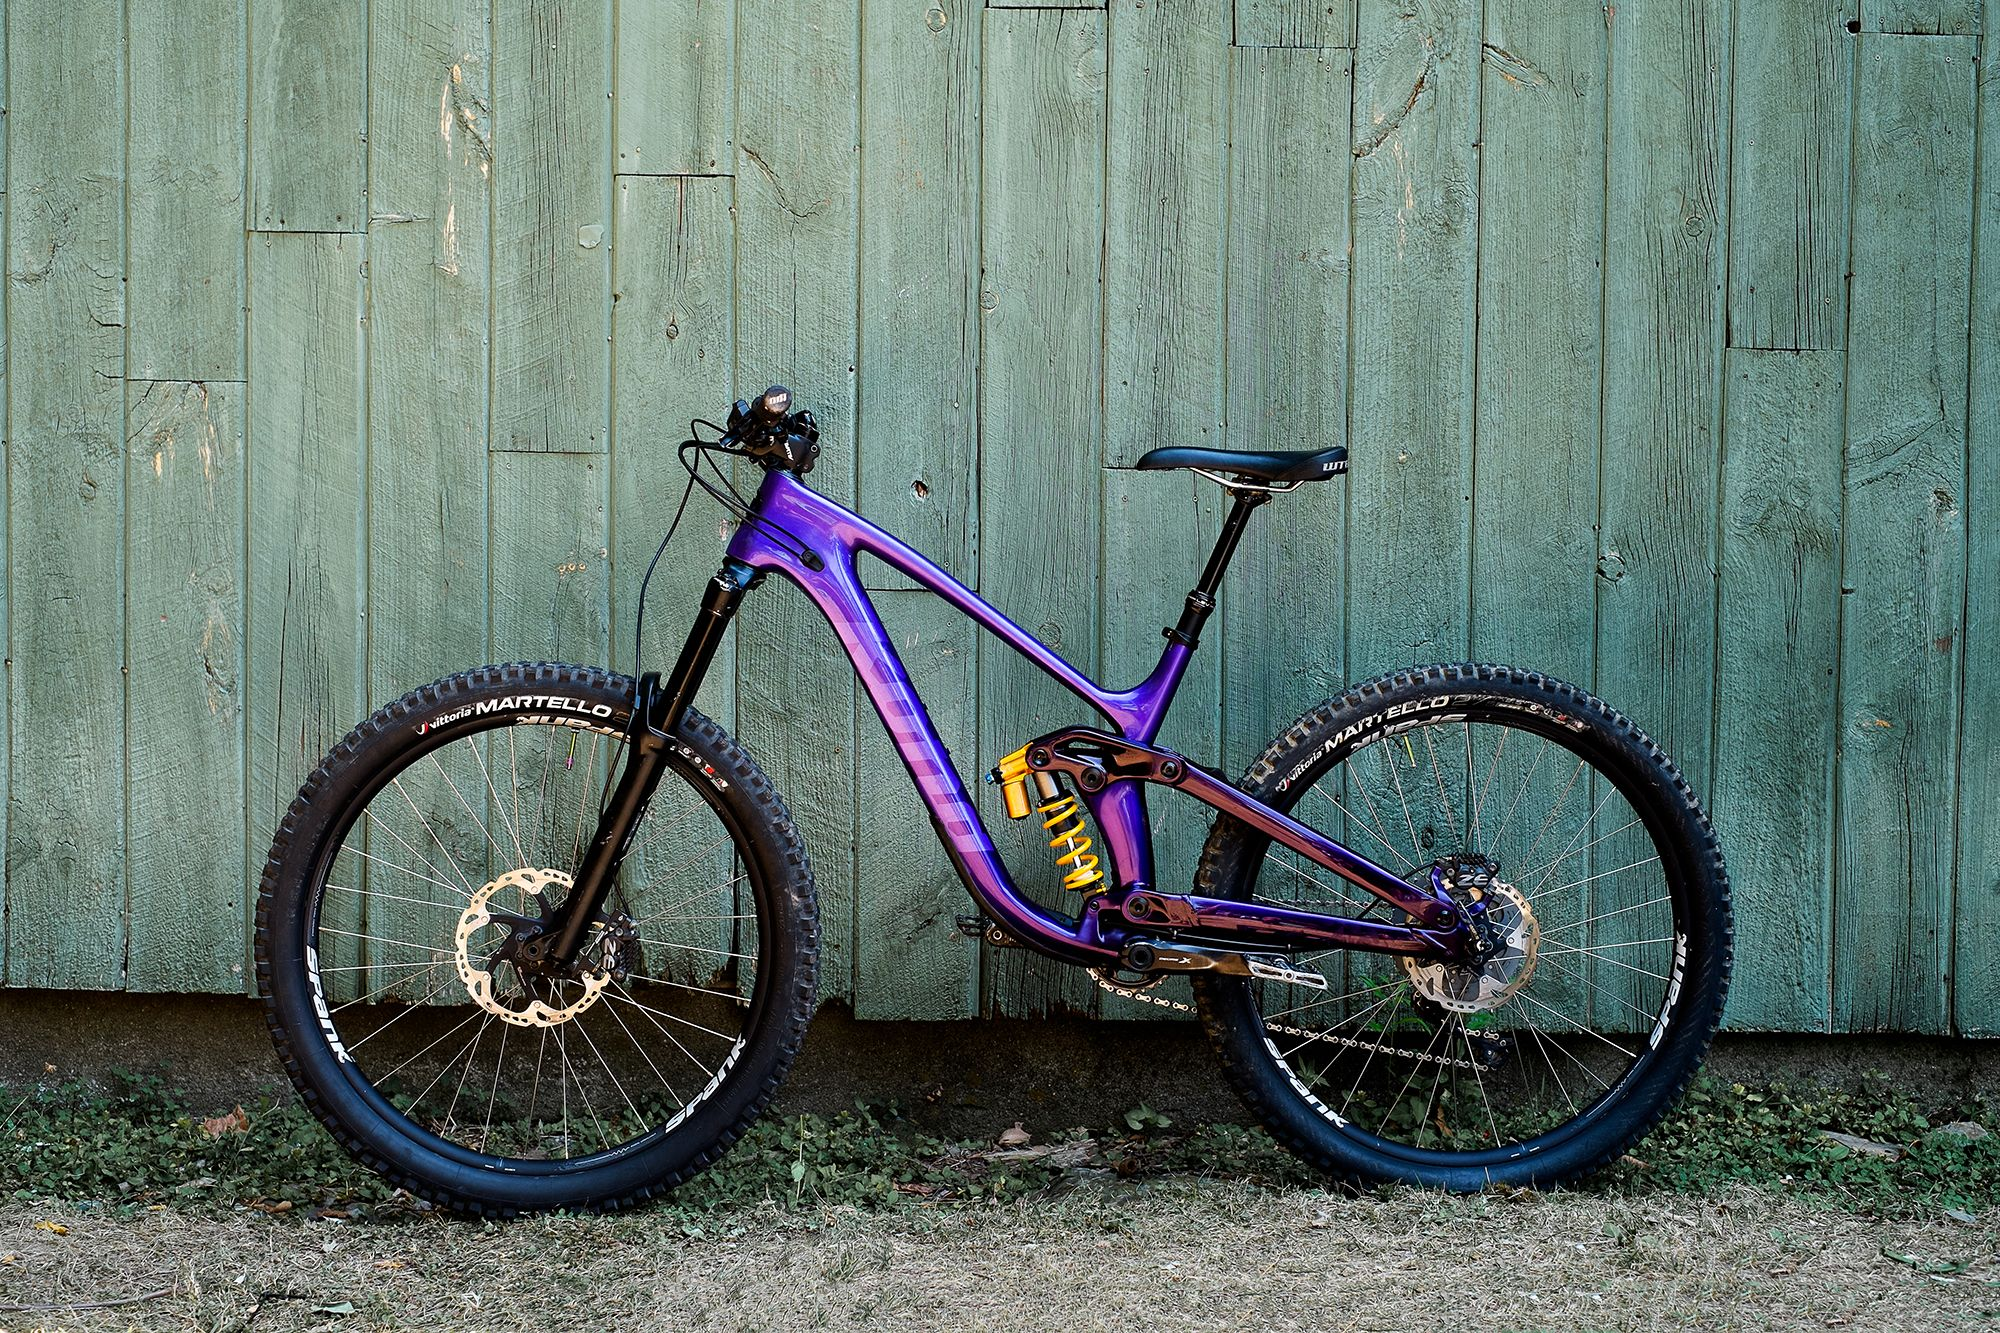 Kona Dream Builds Rich S Deep Purple Process 153 Cr 27 5 Bicykle